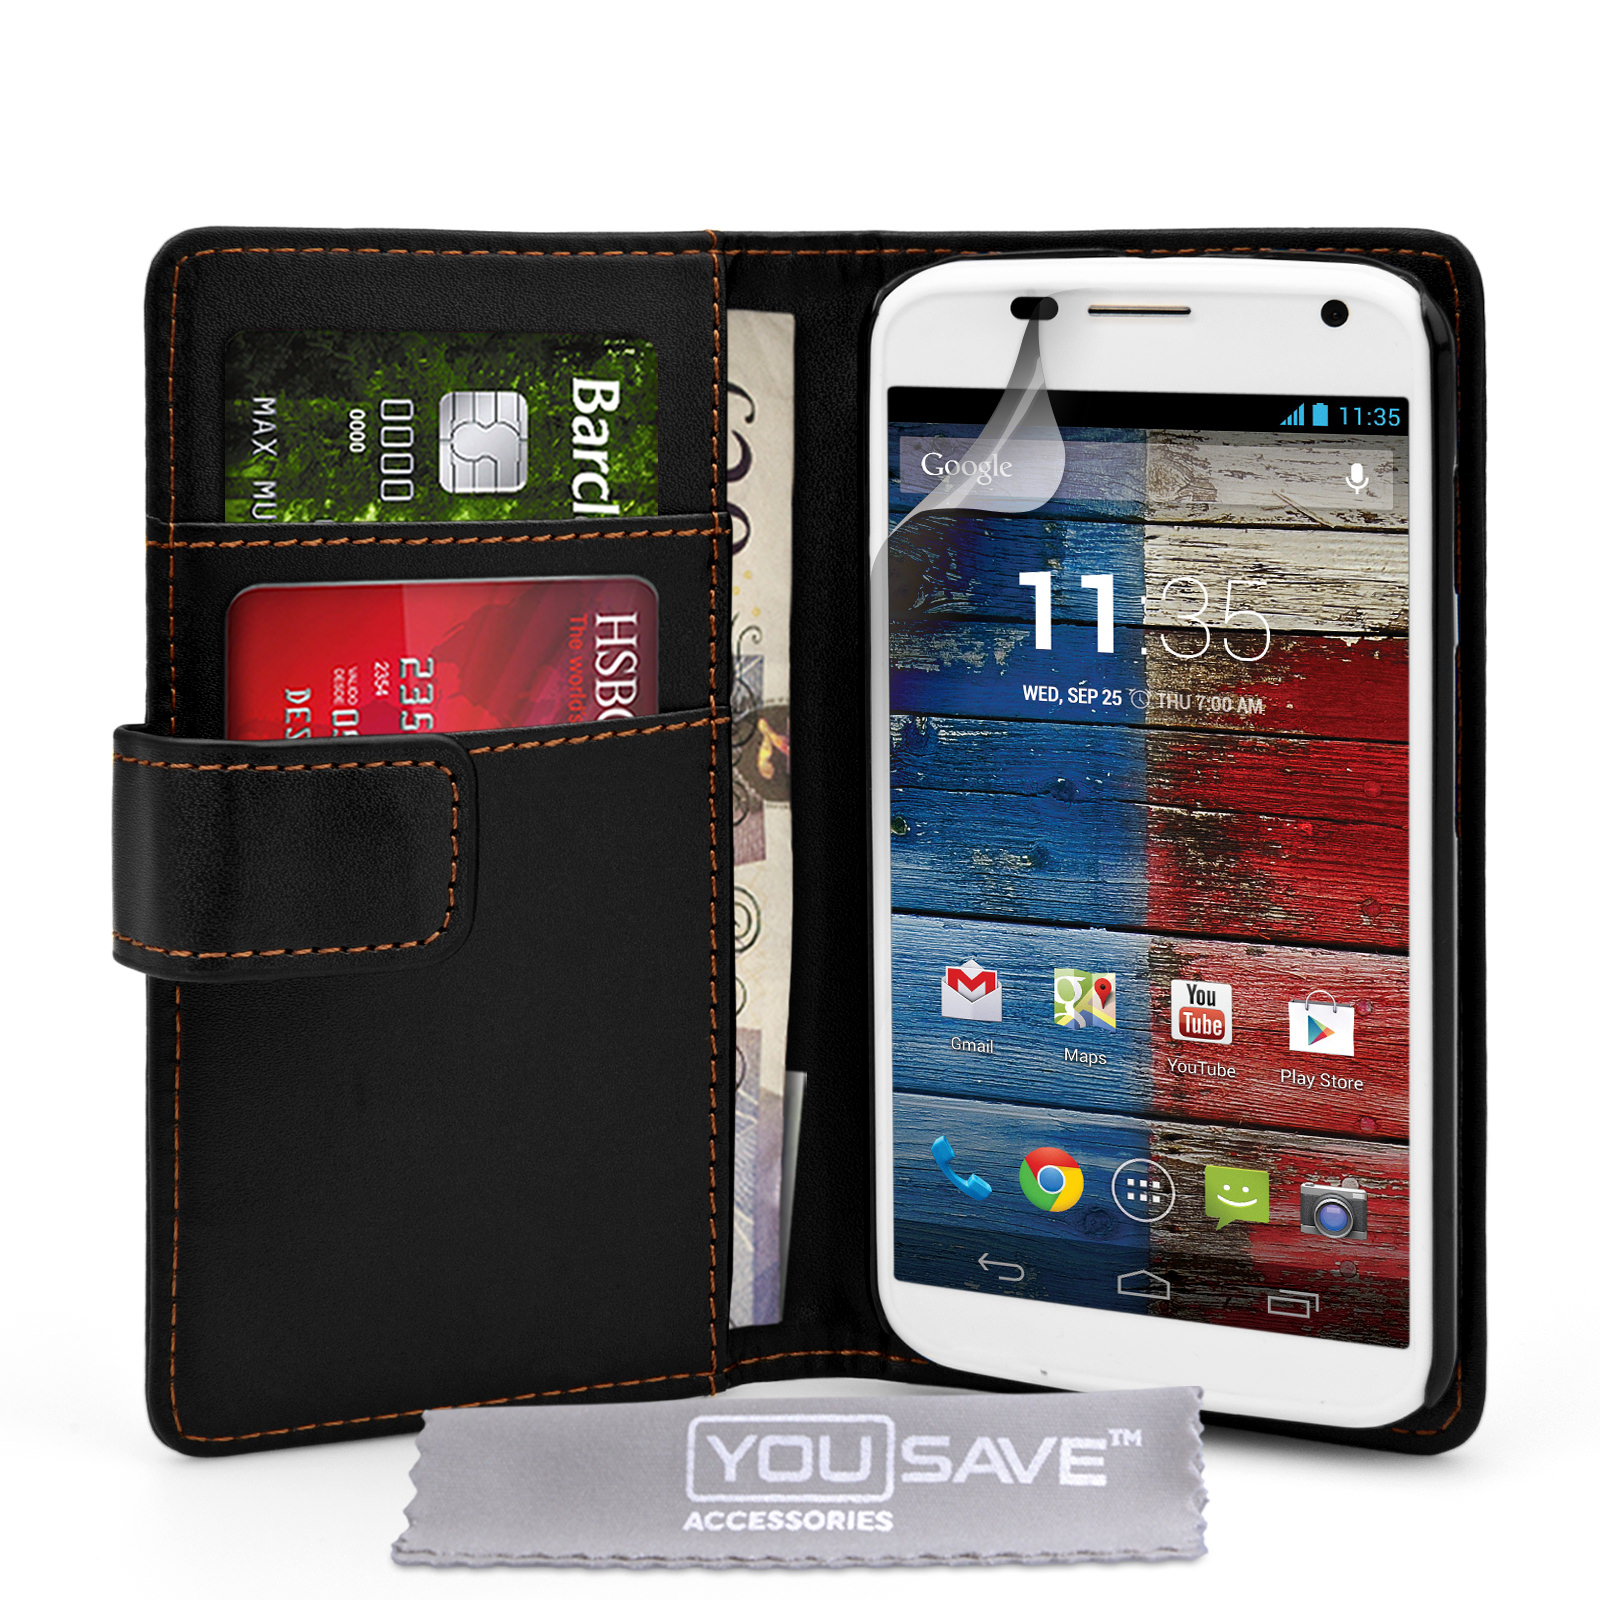 YouSave Accessories Motorola Moto X Leather-Effect Wallet Case - Black